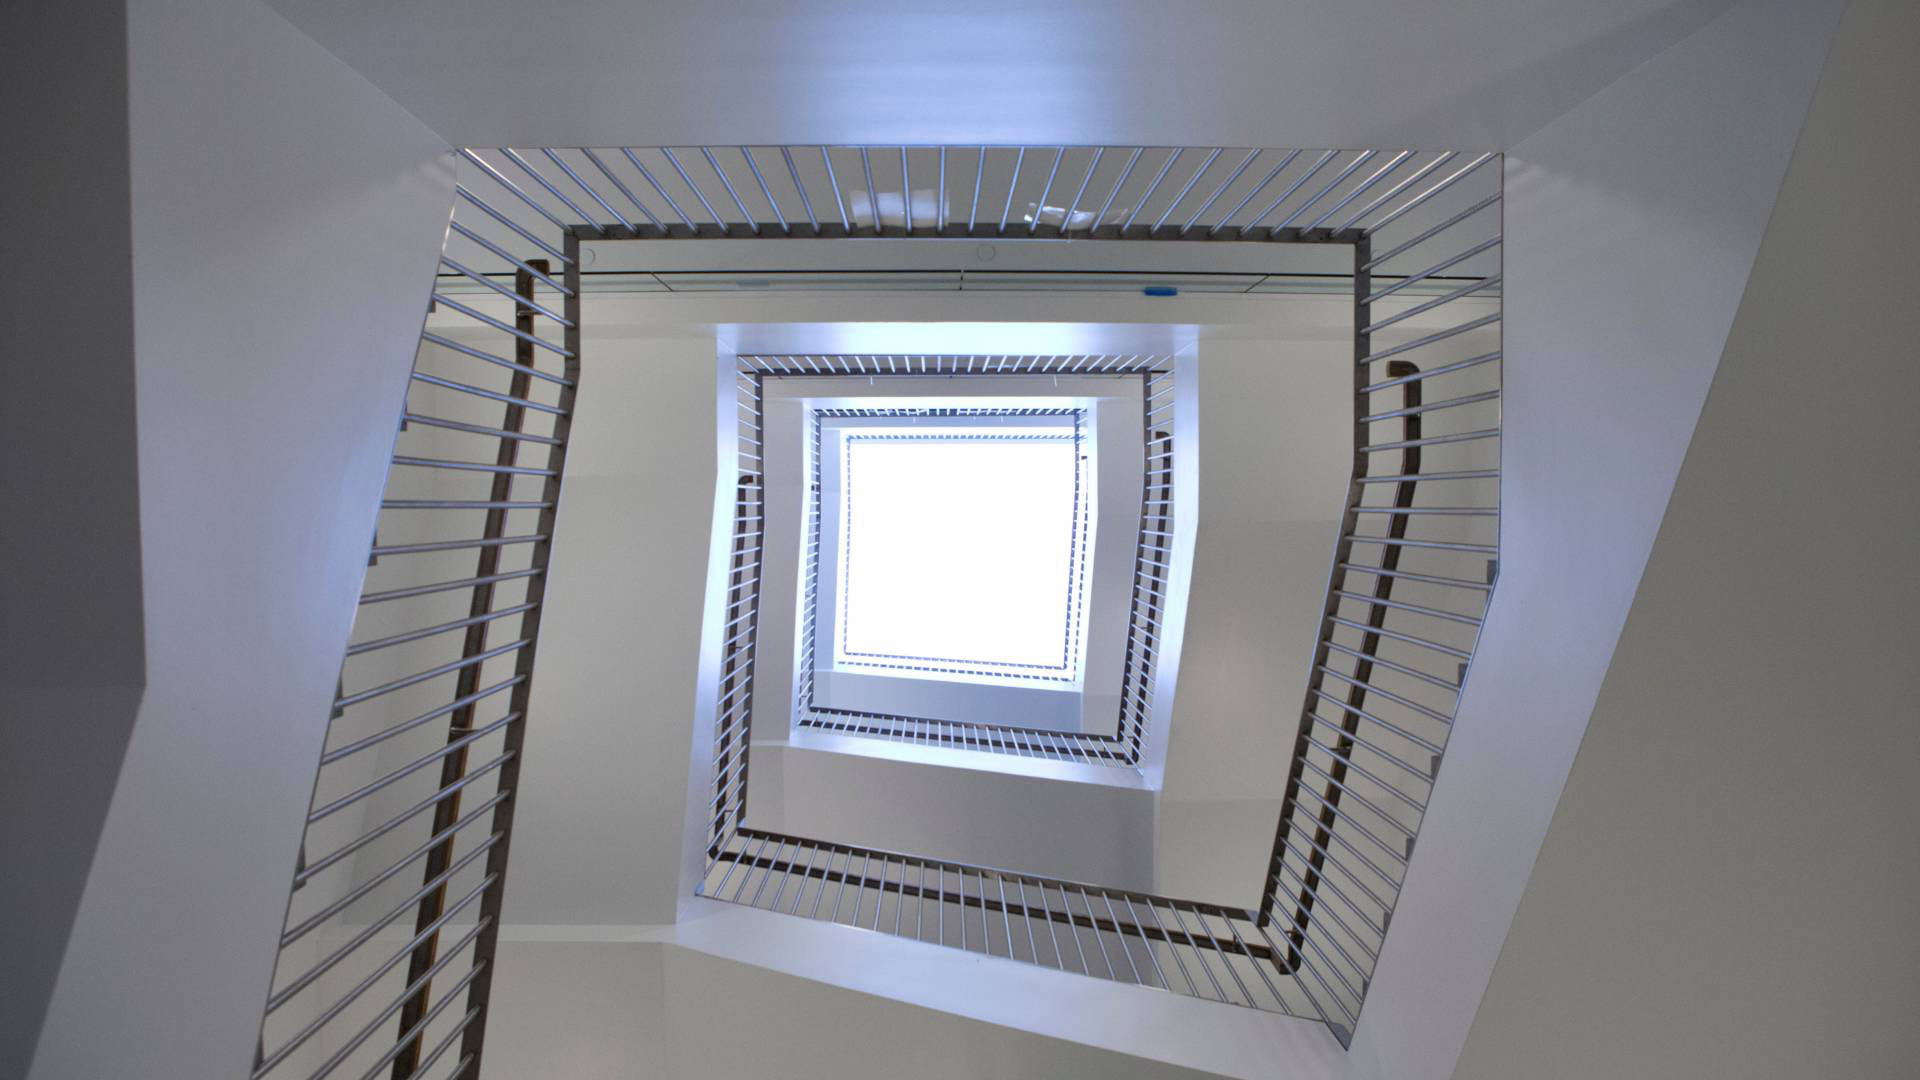 Looking up through a stairwell into a skylight